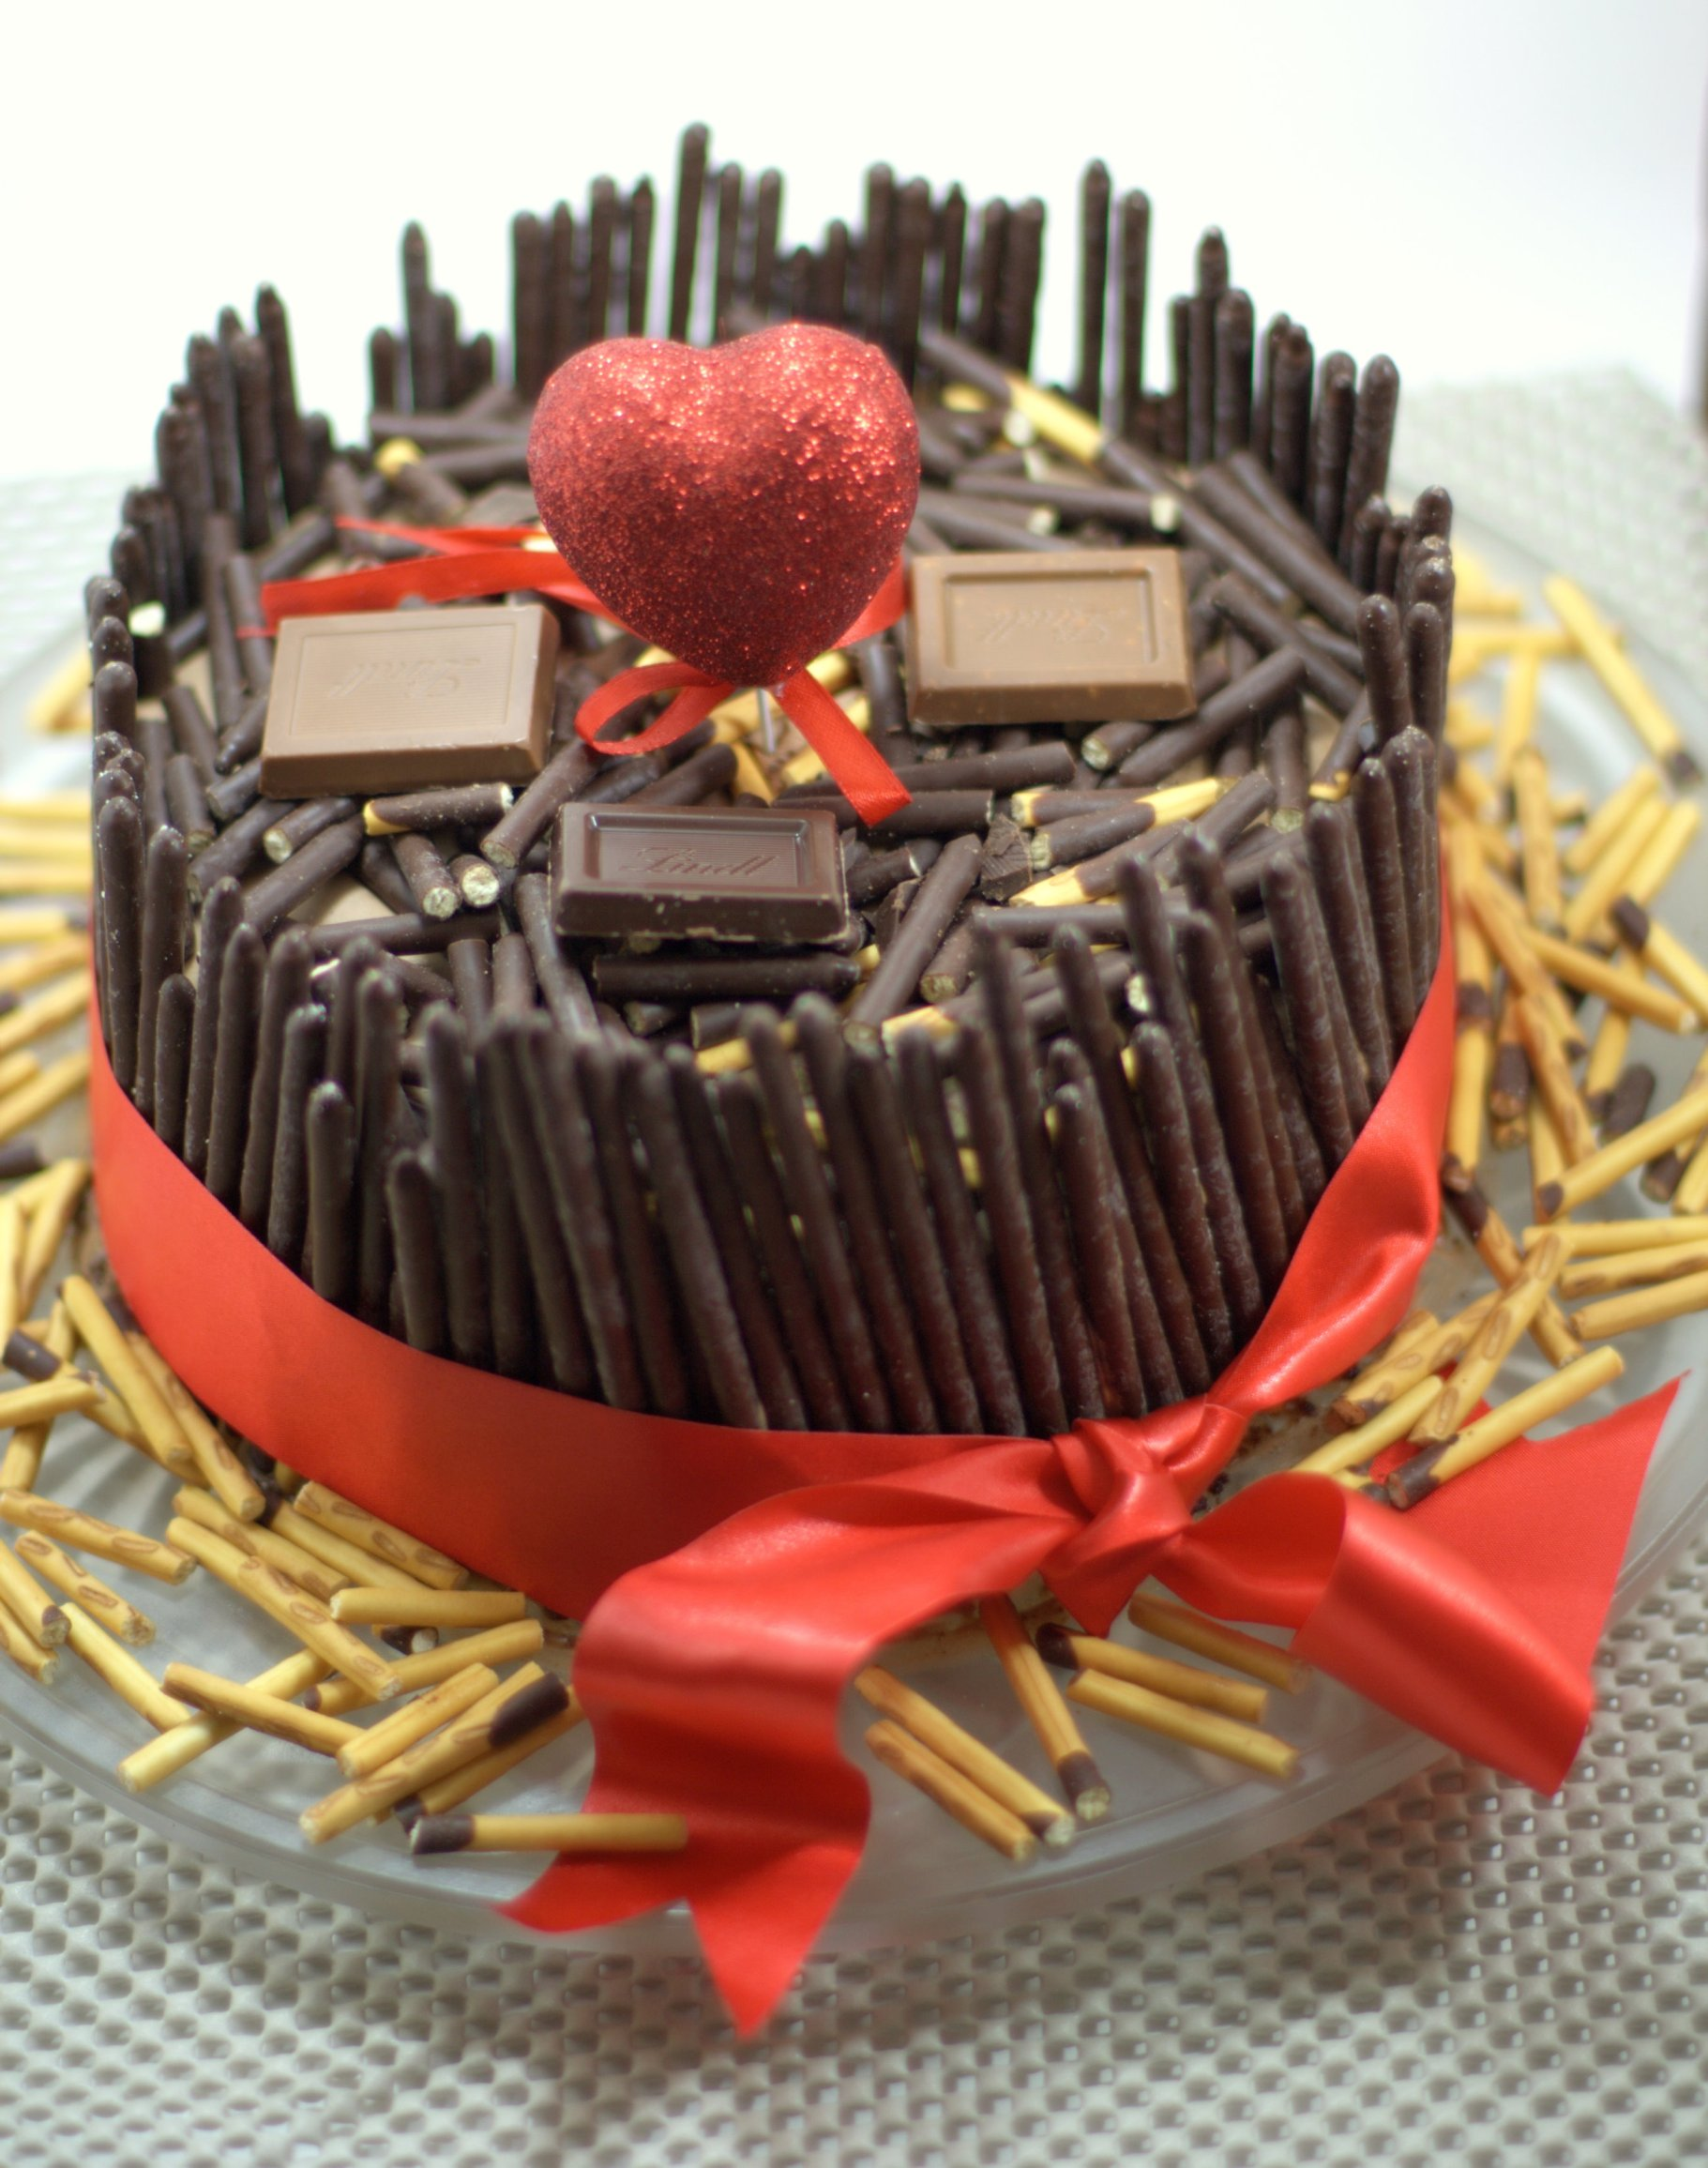 Happy Birthday Wishes Friend with Chocolate shaly1.jpg